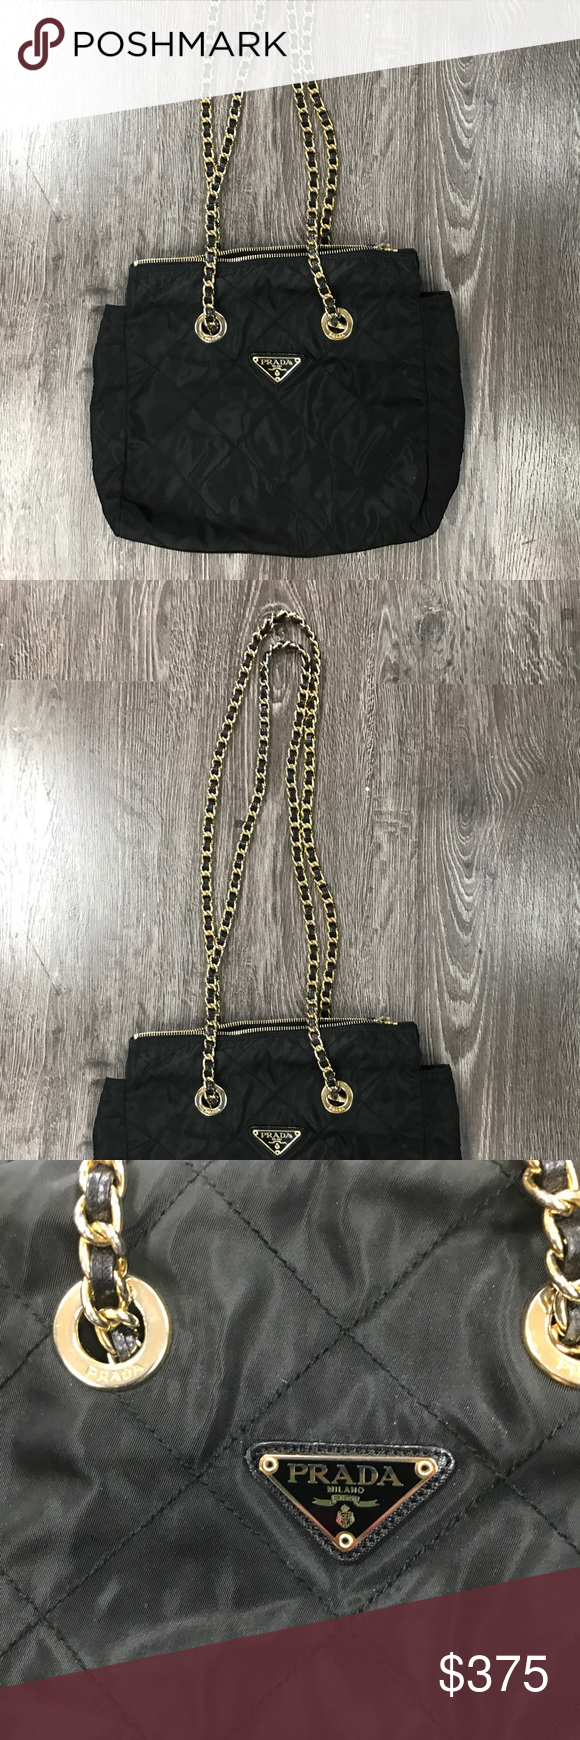 fdde0b006c Authentic Prada Quilted Nylon gold chain handbag Beautiful Authentic Orade  black quilted shoulder bag with Douglas long chain- EXCELLENT condition..  light ...